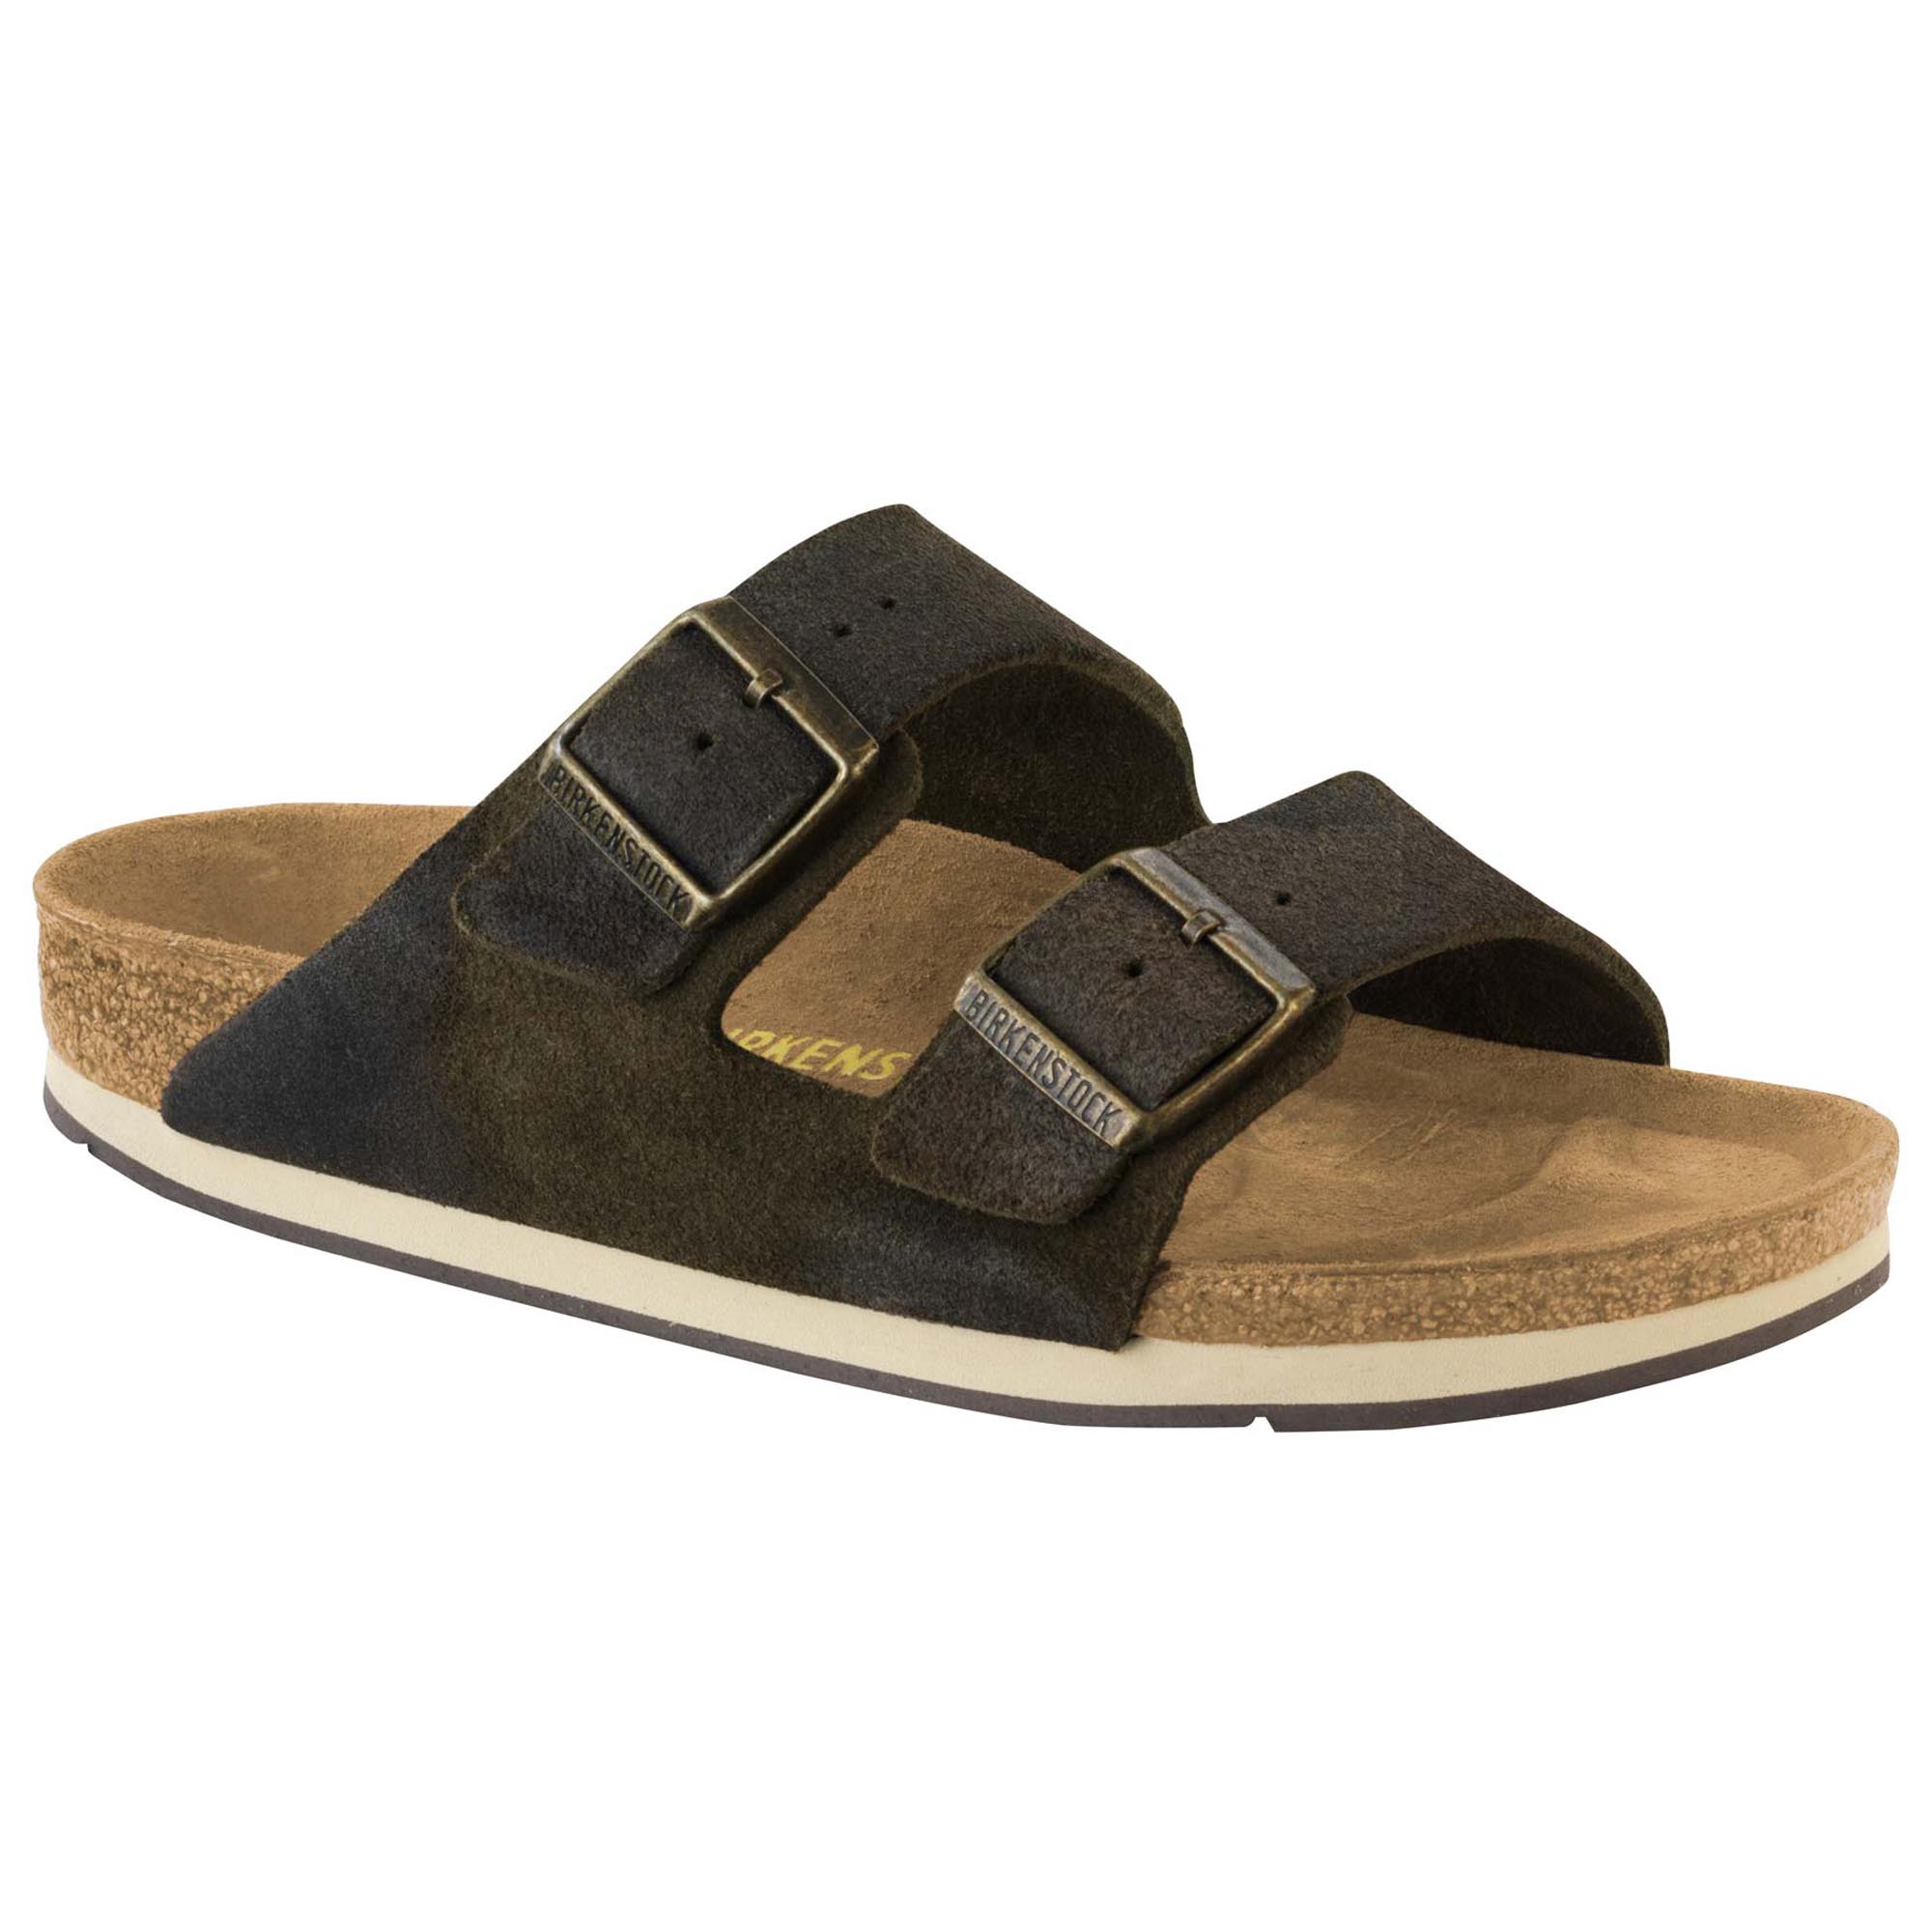 0817ac74f Arizona Suede Leather | shop online at BIRKENSTOCK